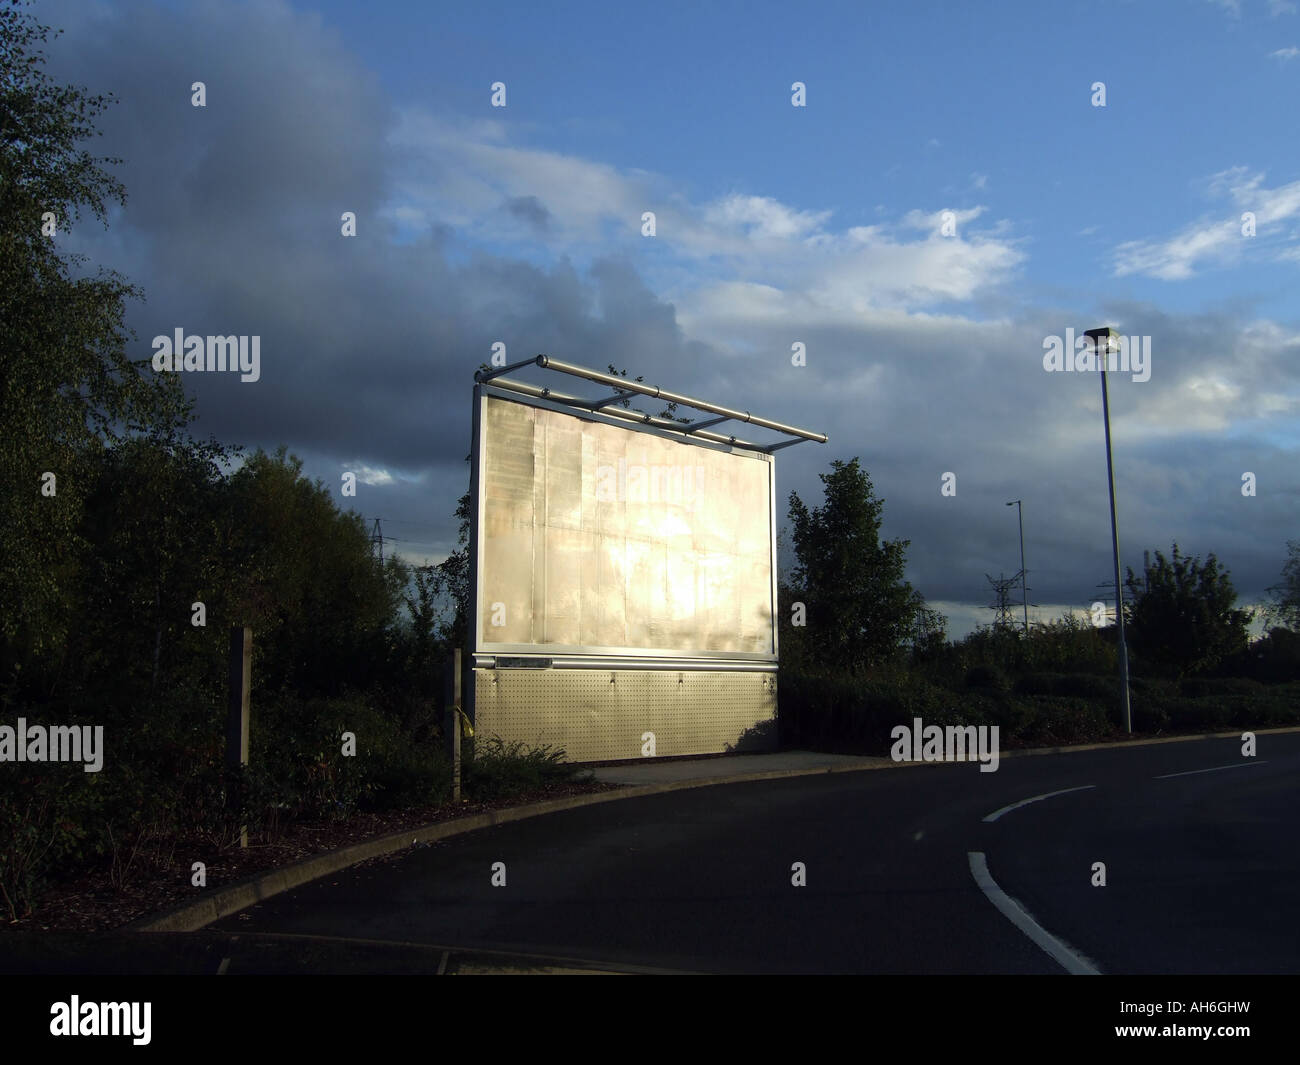 An advertising hoarding reflecting the sunlight - Stock Image